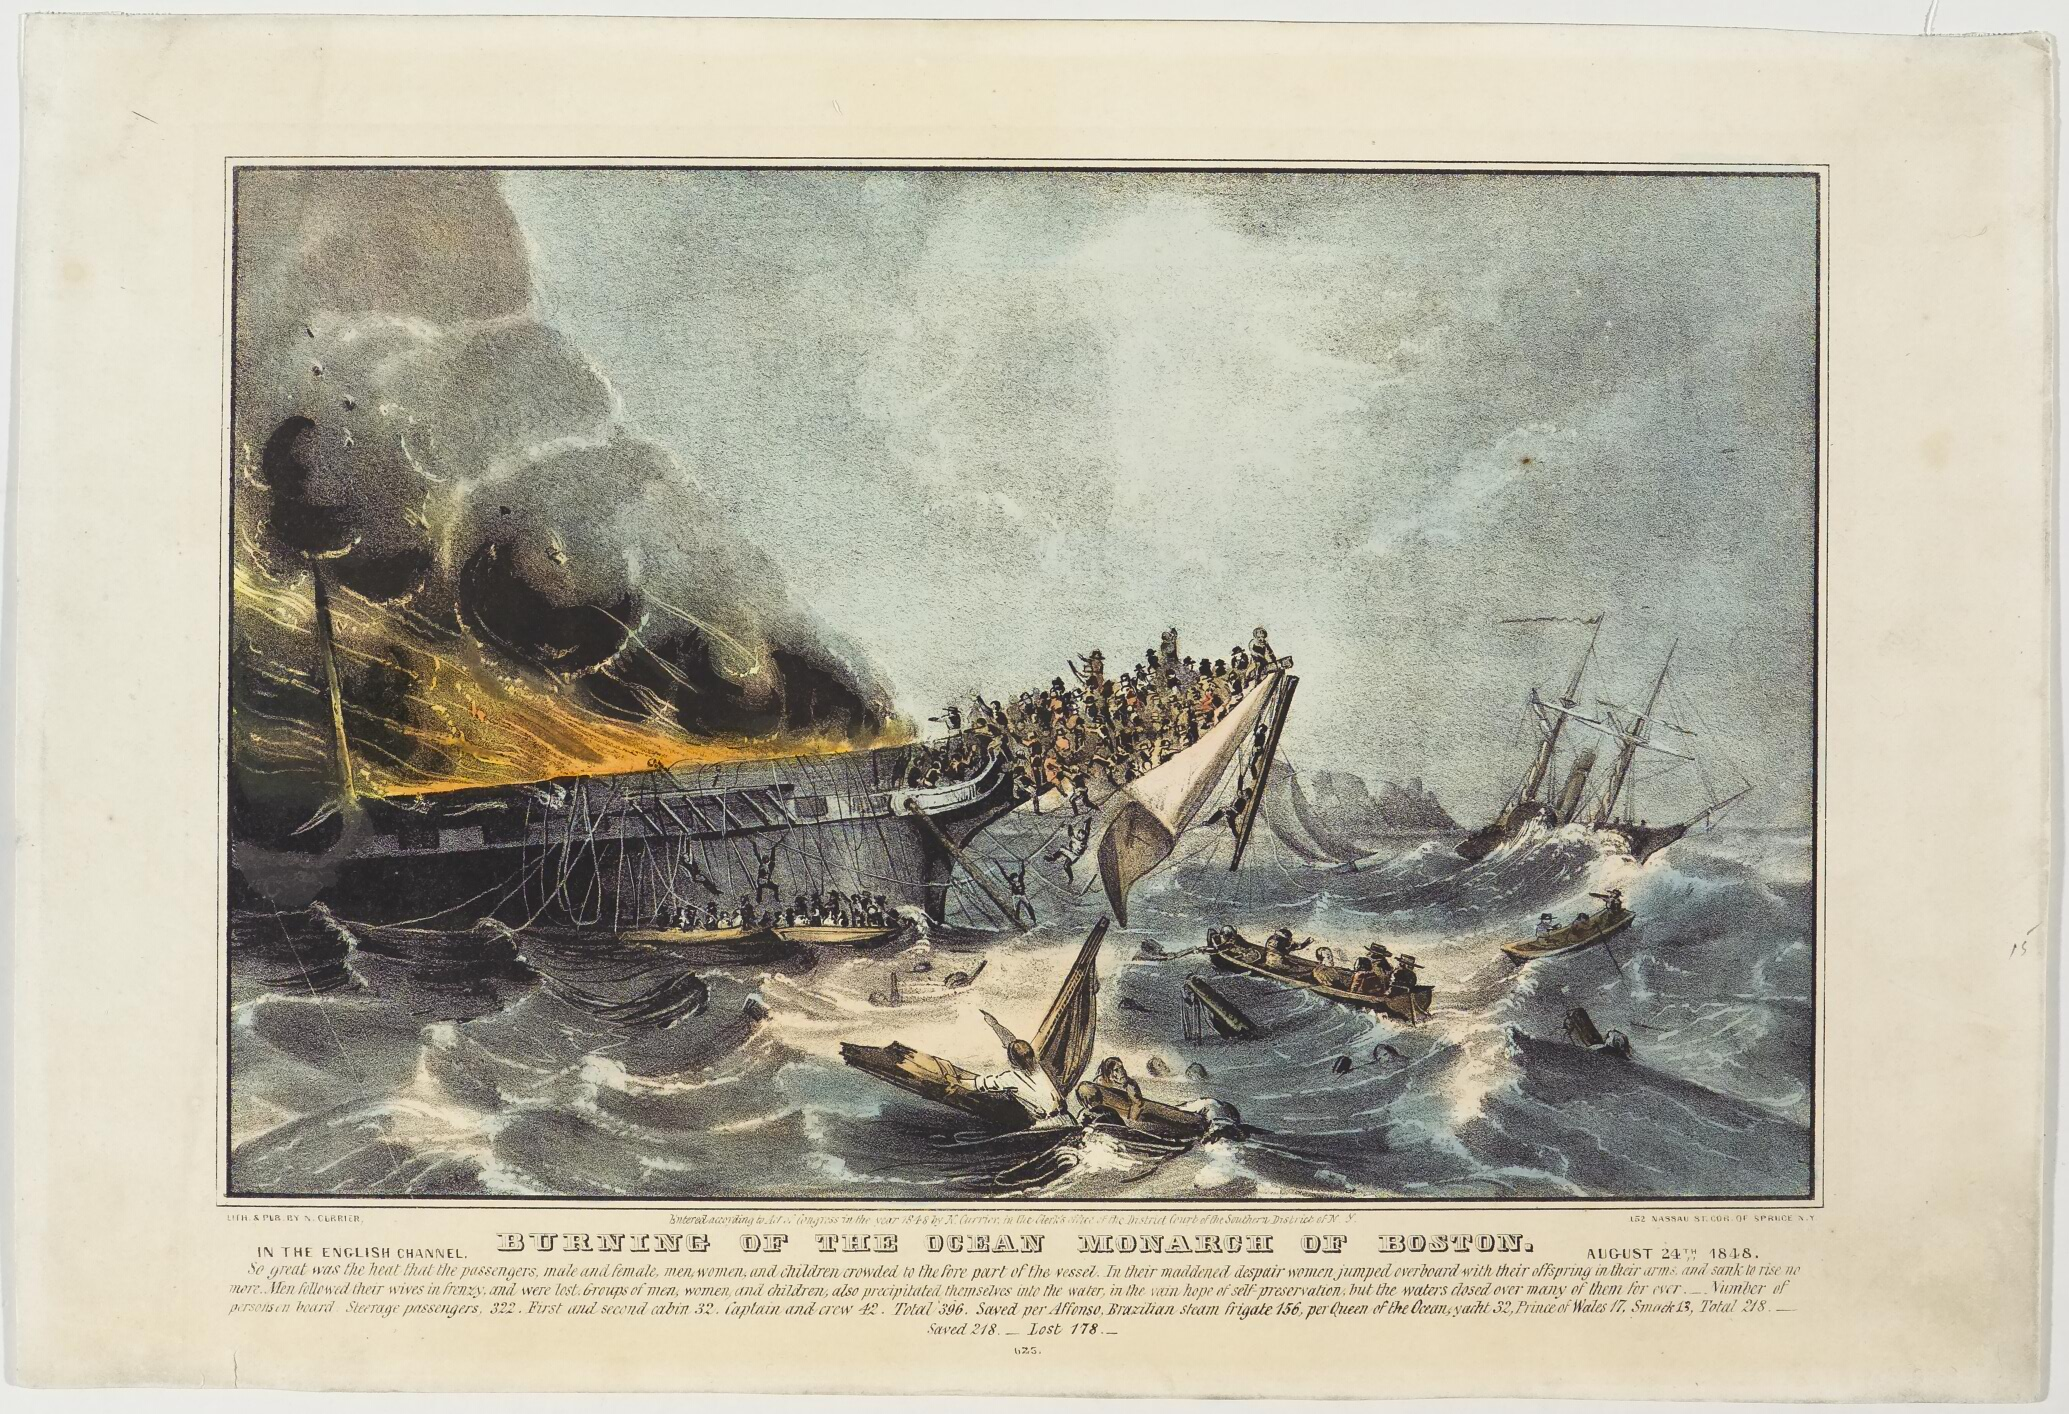 Ship on left in image aflame; passengers jumping off and hanging off bow